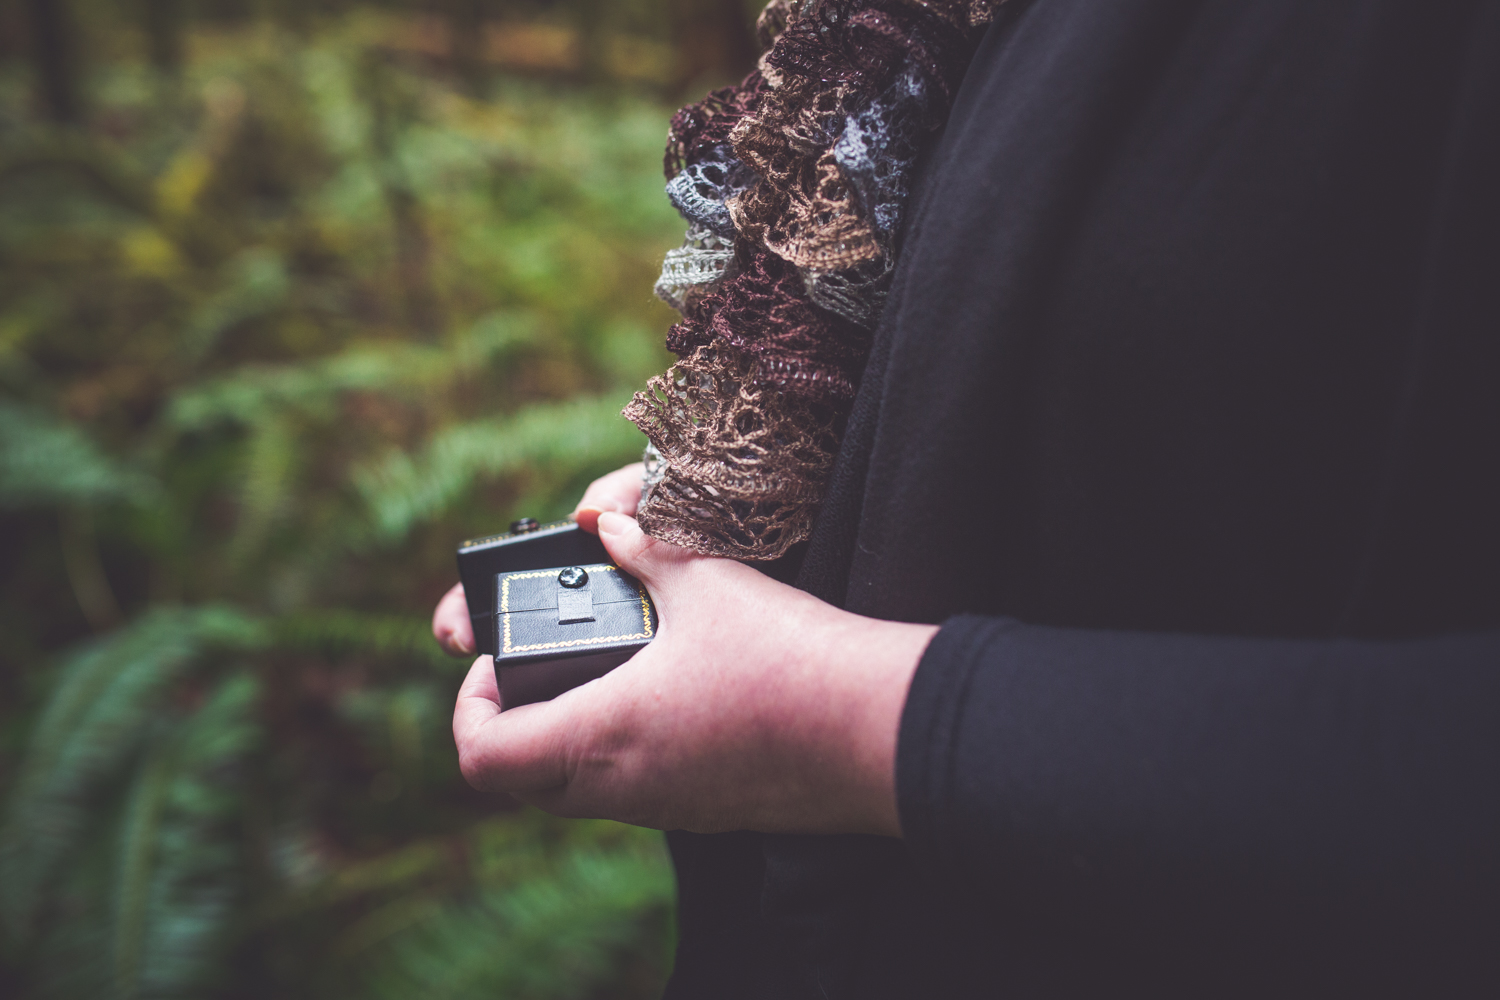 cathedral-grove-elopement-photos-21.jpg